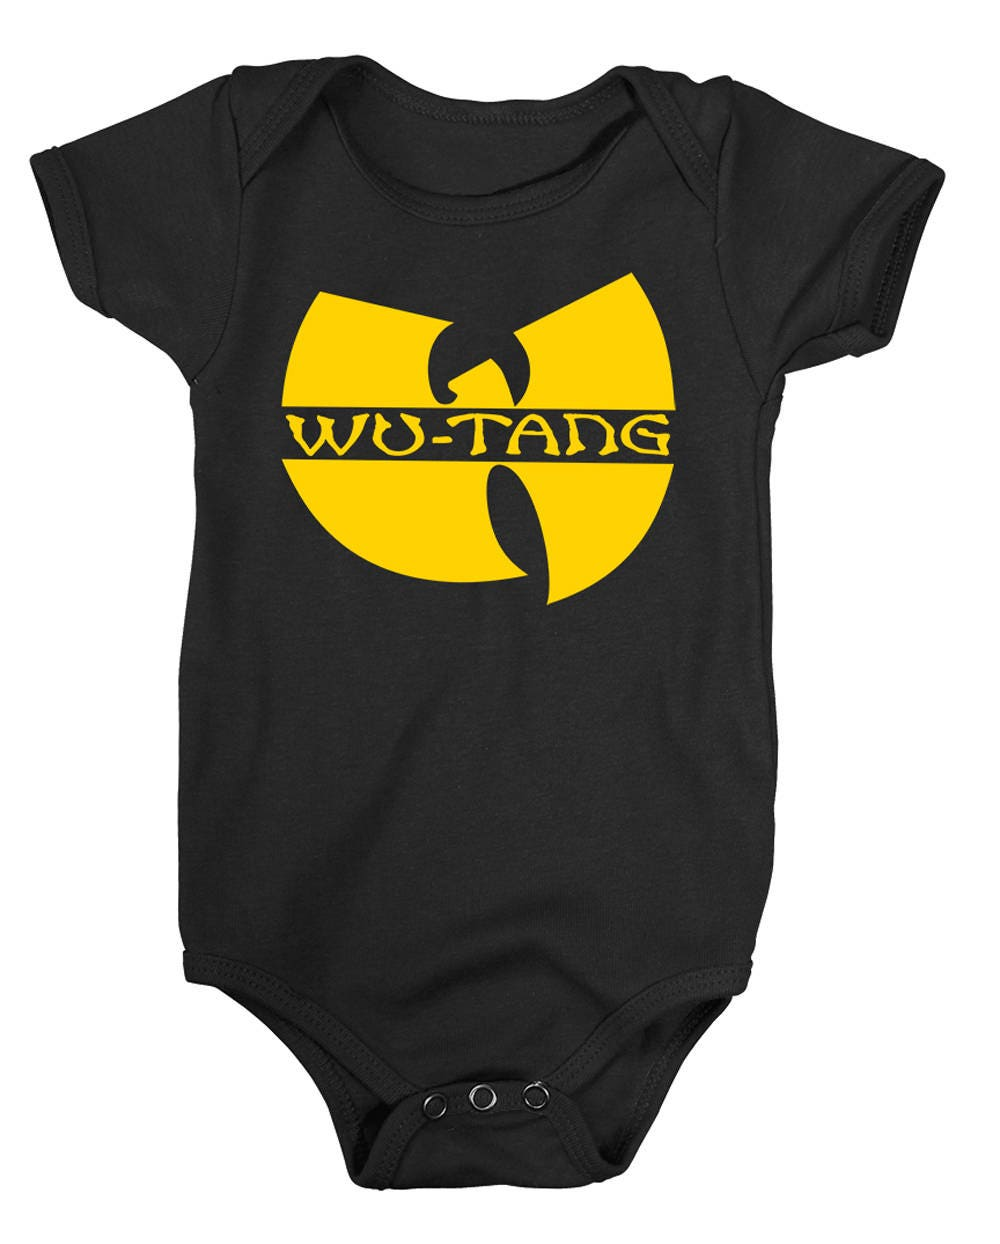 Find great deals on eBay for wu tang baby clothes. Shop with confidence.